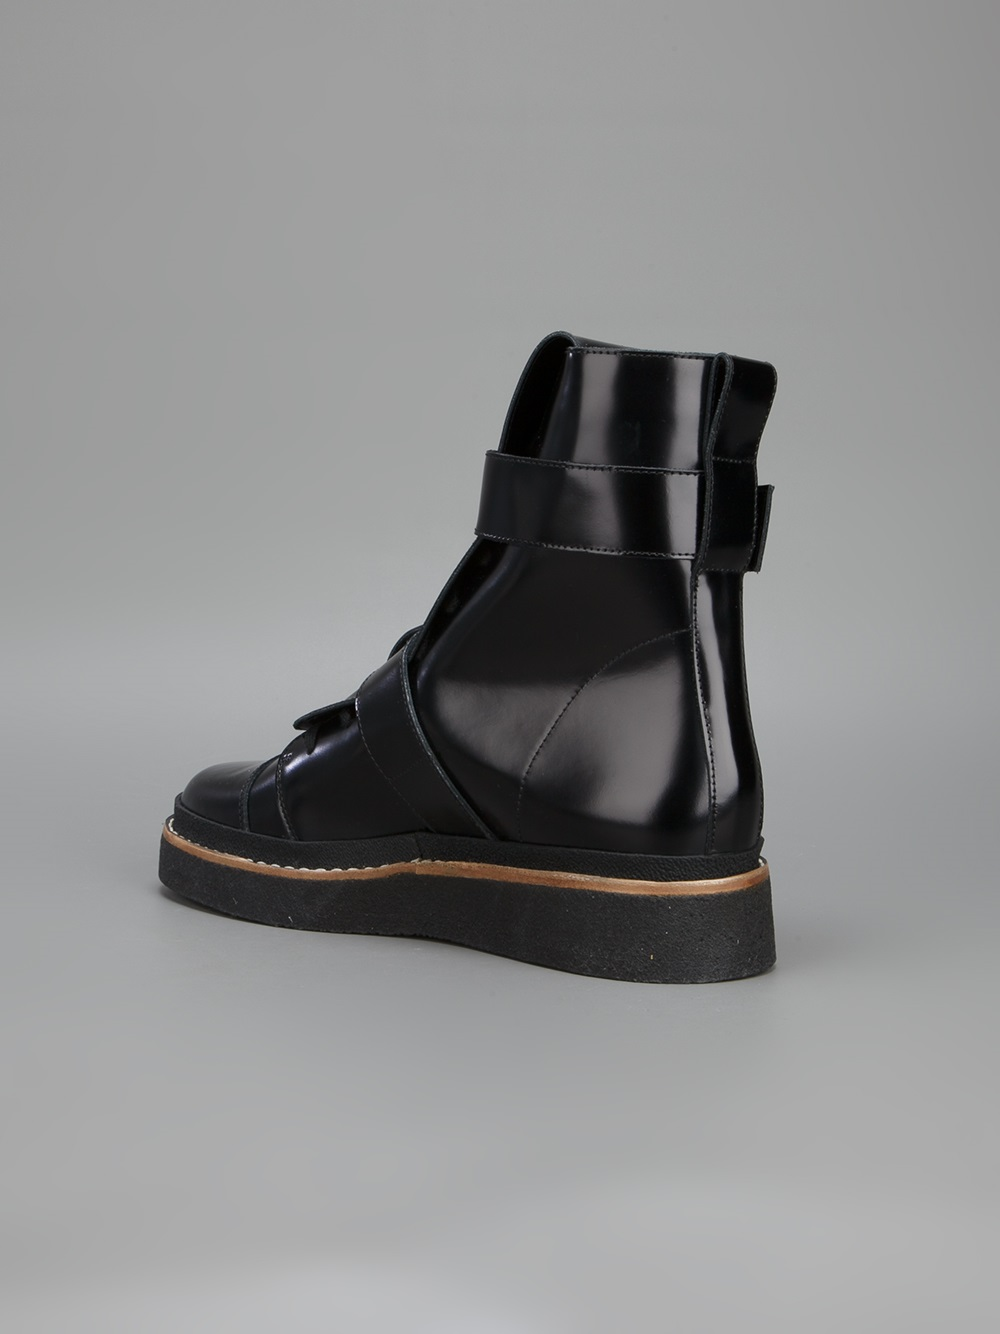 Marni Leather Buckled Boots FqTWqjnHq